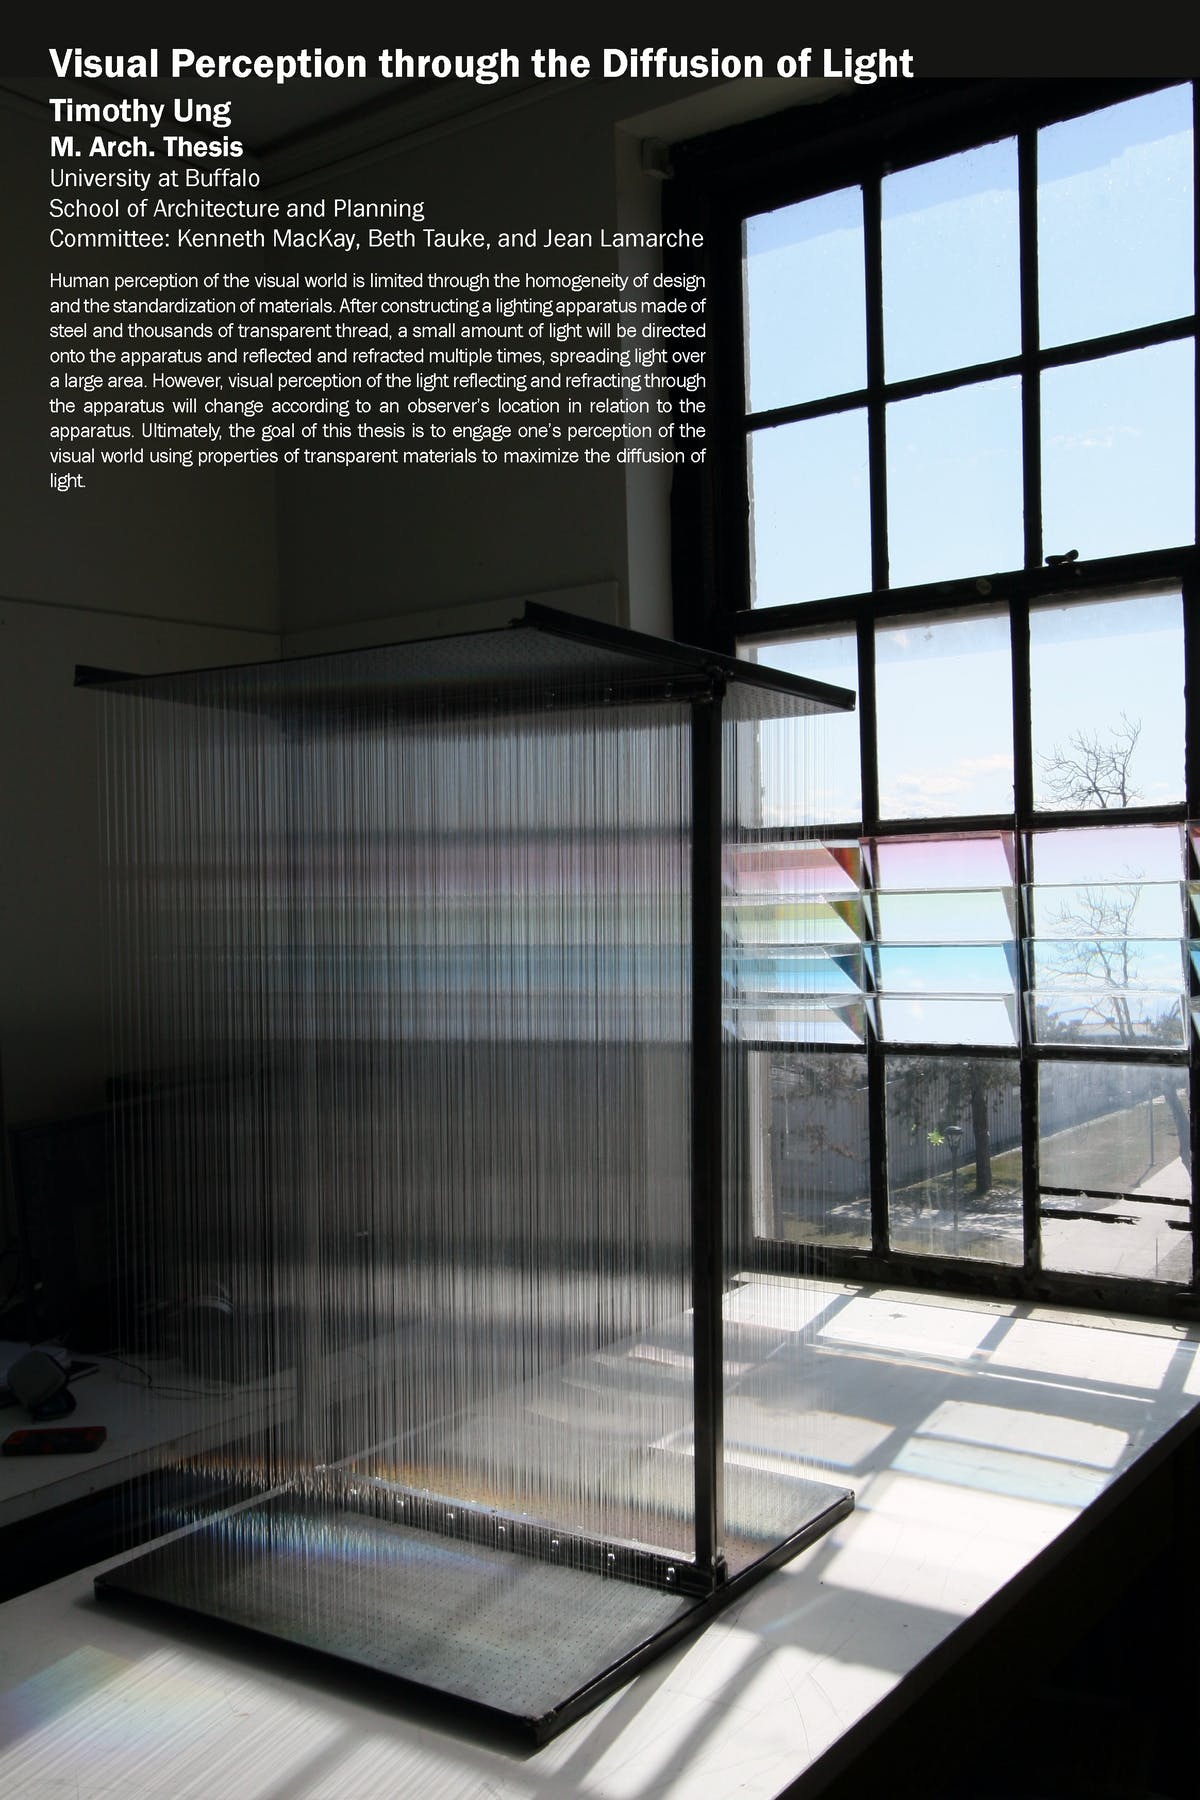 Master's Thesis: Visual Perception through the Diffusion of Light